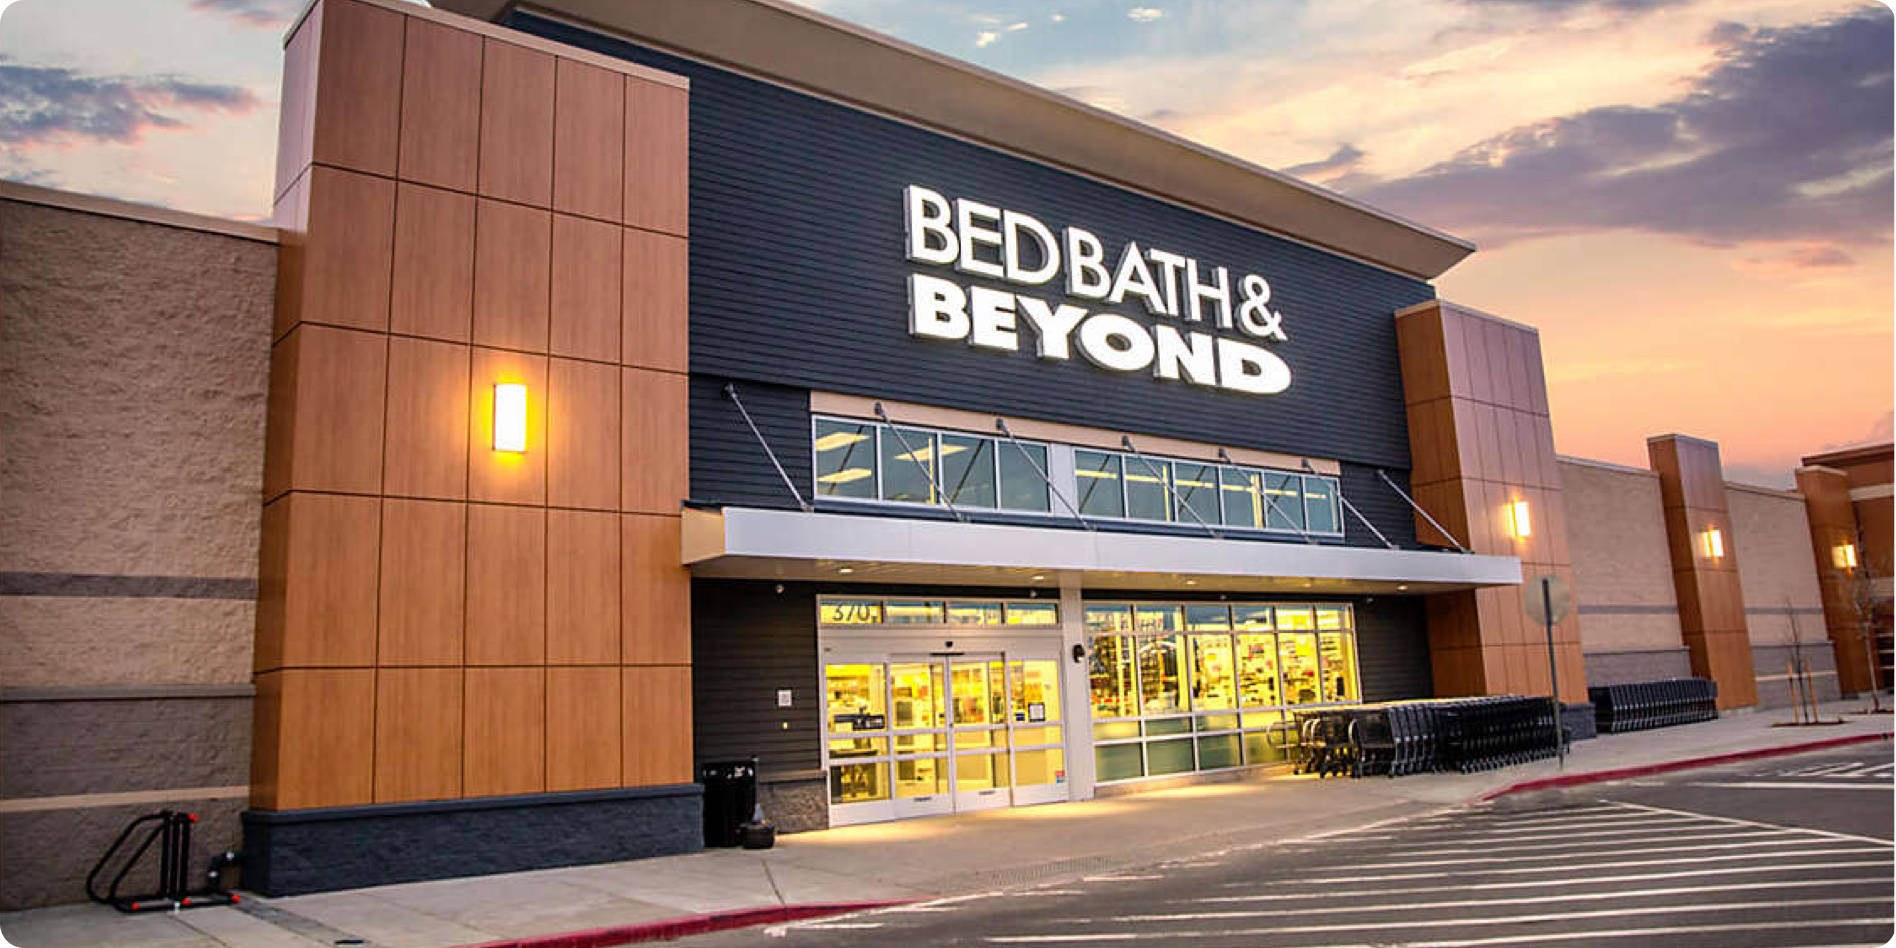 bed bath & beyond, coronavirus